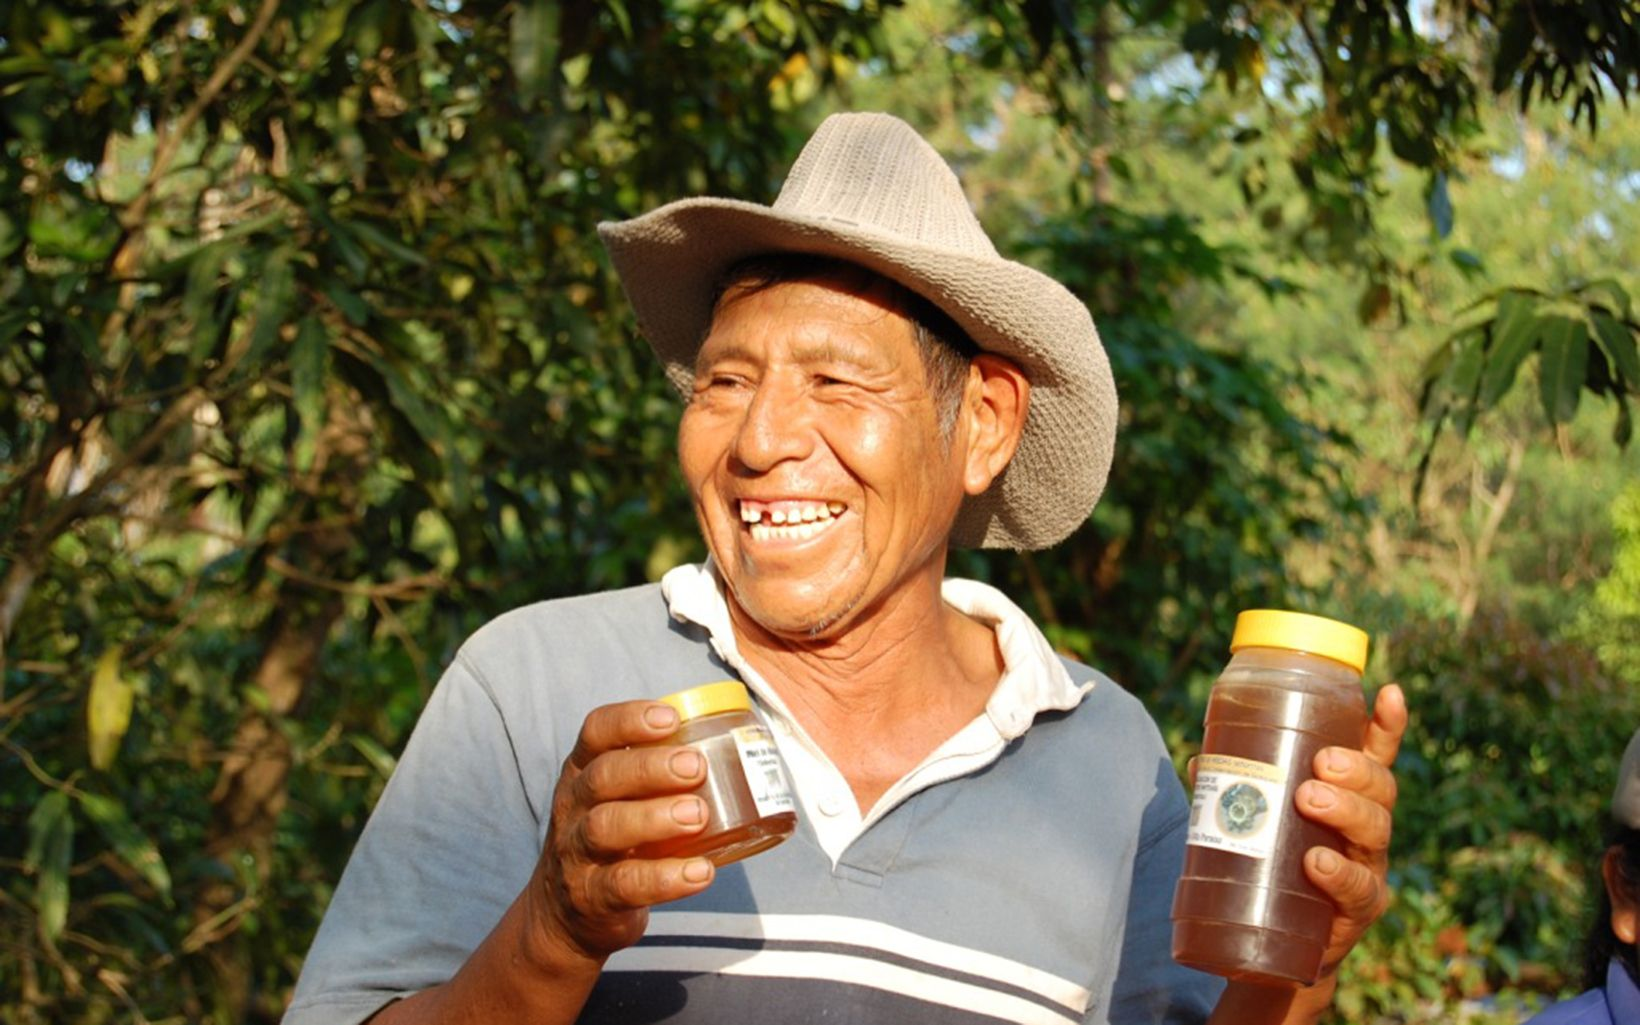 Cattle feces contaminated the drinking water source in Pucará, Bolivia. A water fund now rewards ranchers and farmers who protect lands and streams in the watershed with payments, beehives or irrigation system materials. The program improves water quality and local lives.